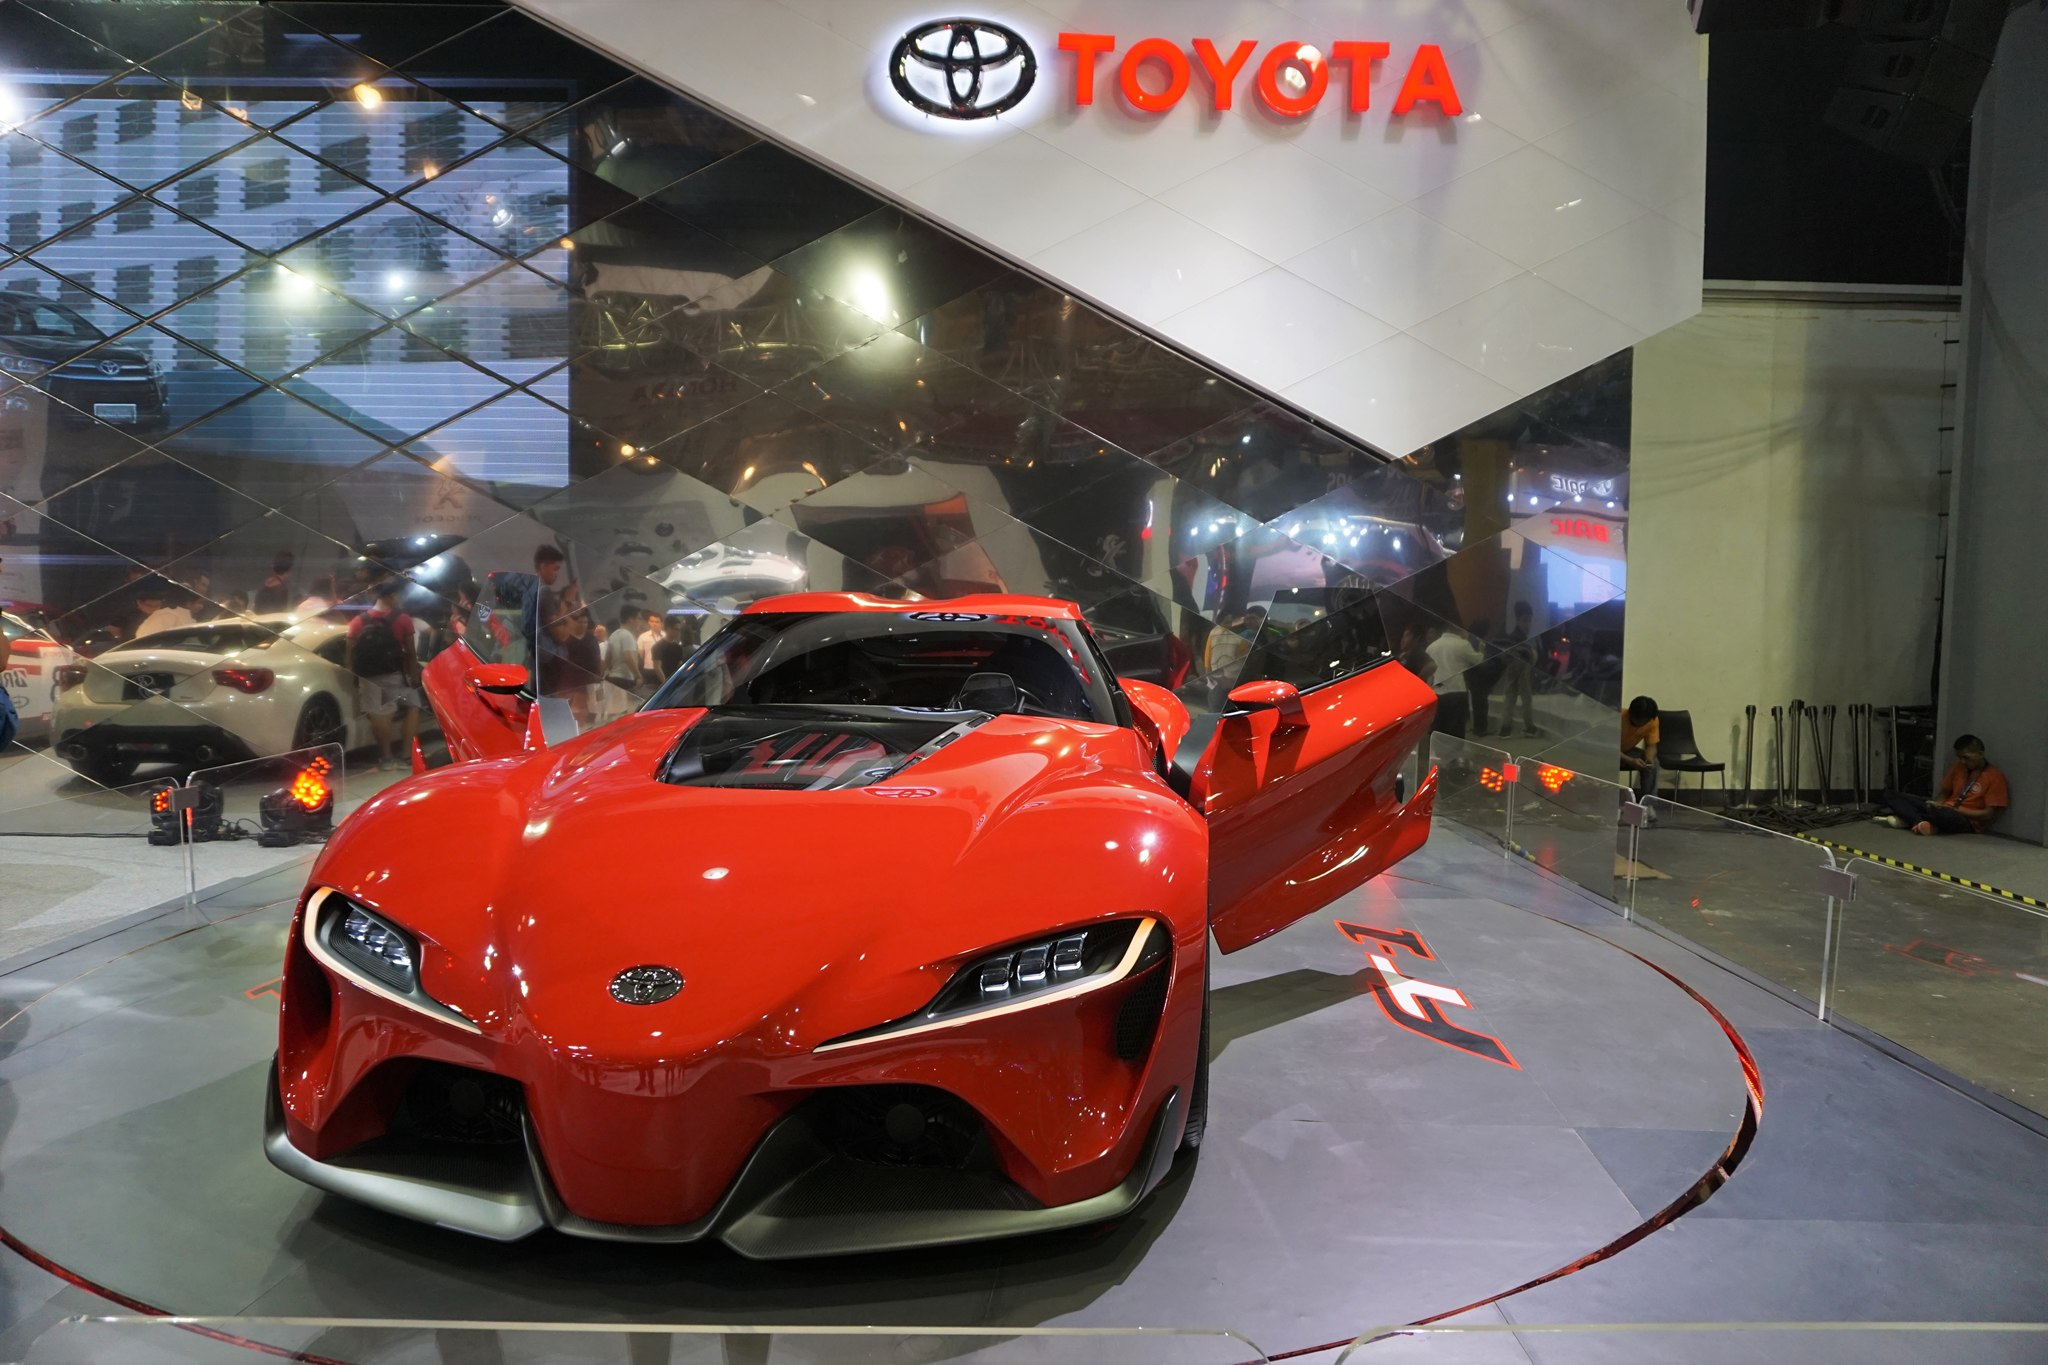 toyota-ft-1-concept-car-at-the-philippine-international-motor-show-3